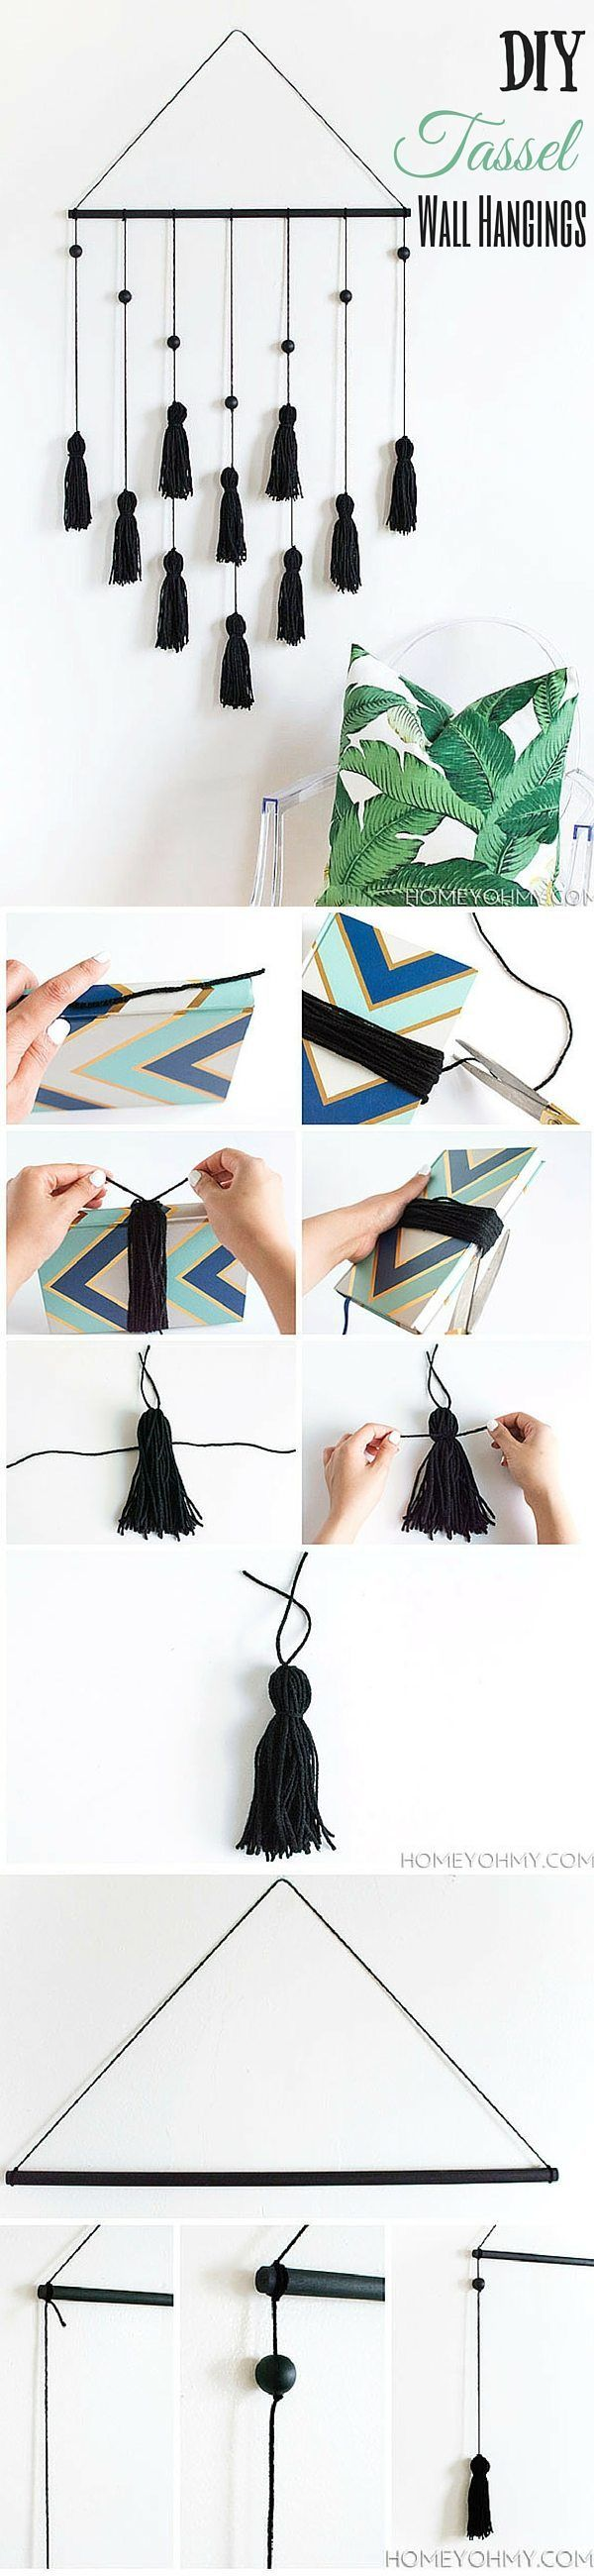 DIY Tassel Wall Hanging | 17 Easy DIY Home Decor Craft Projects…